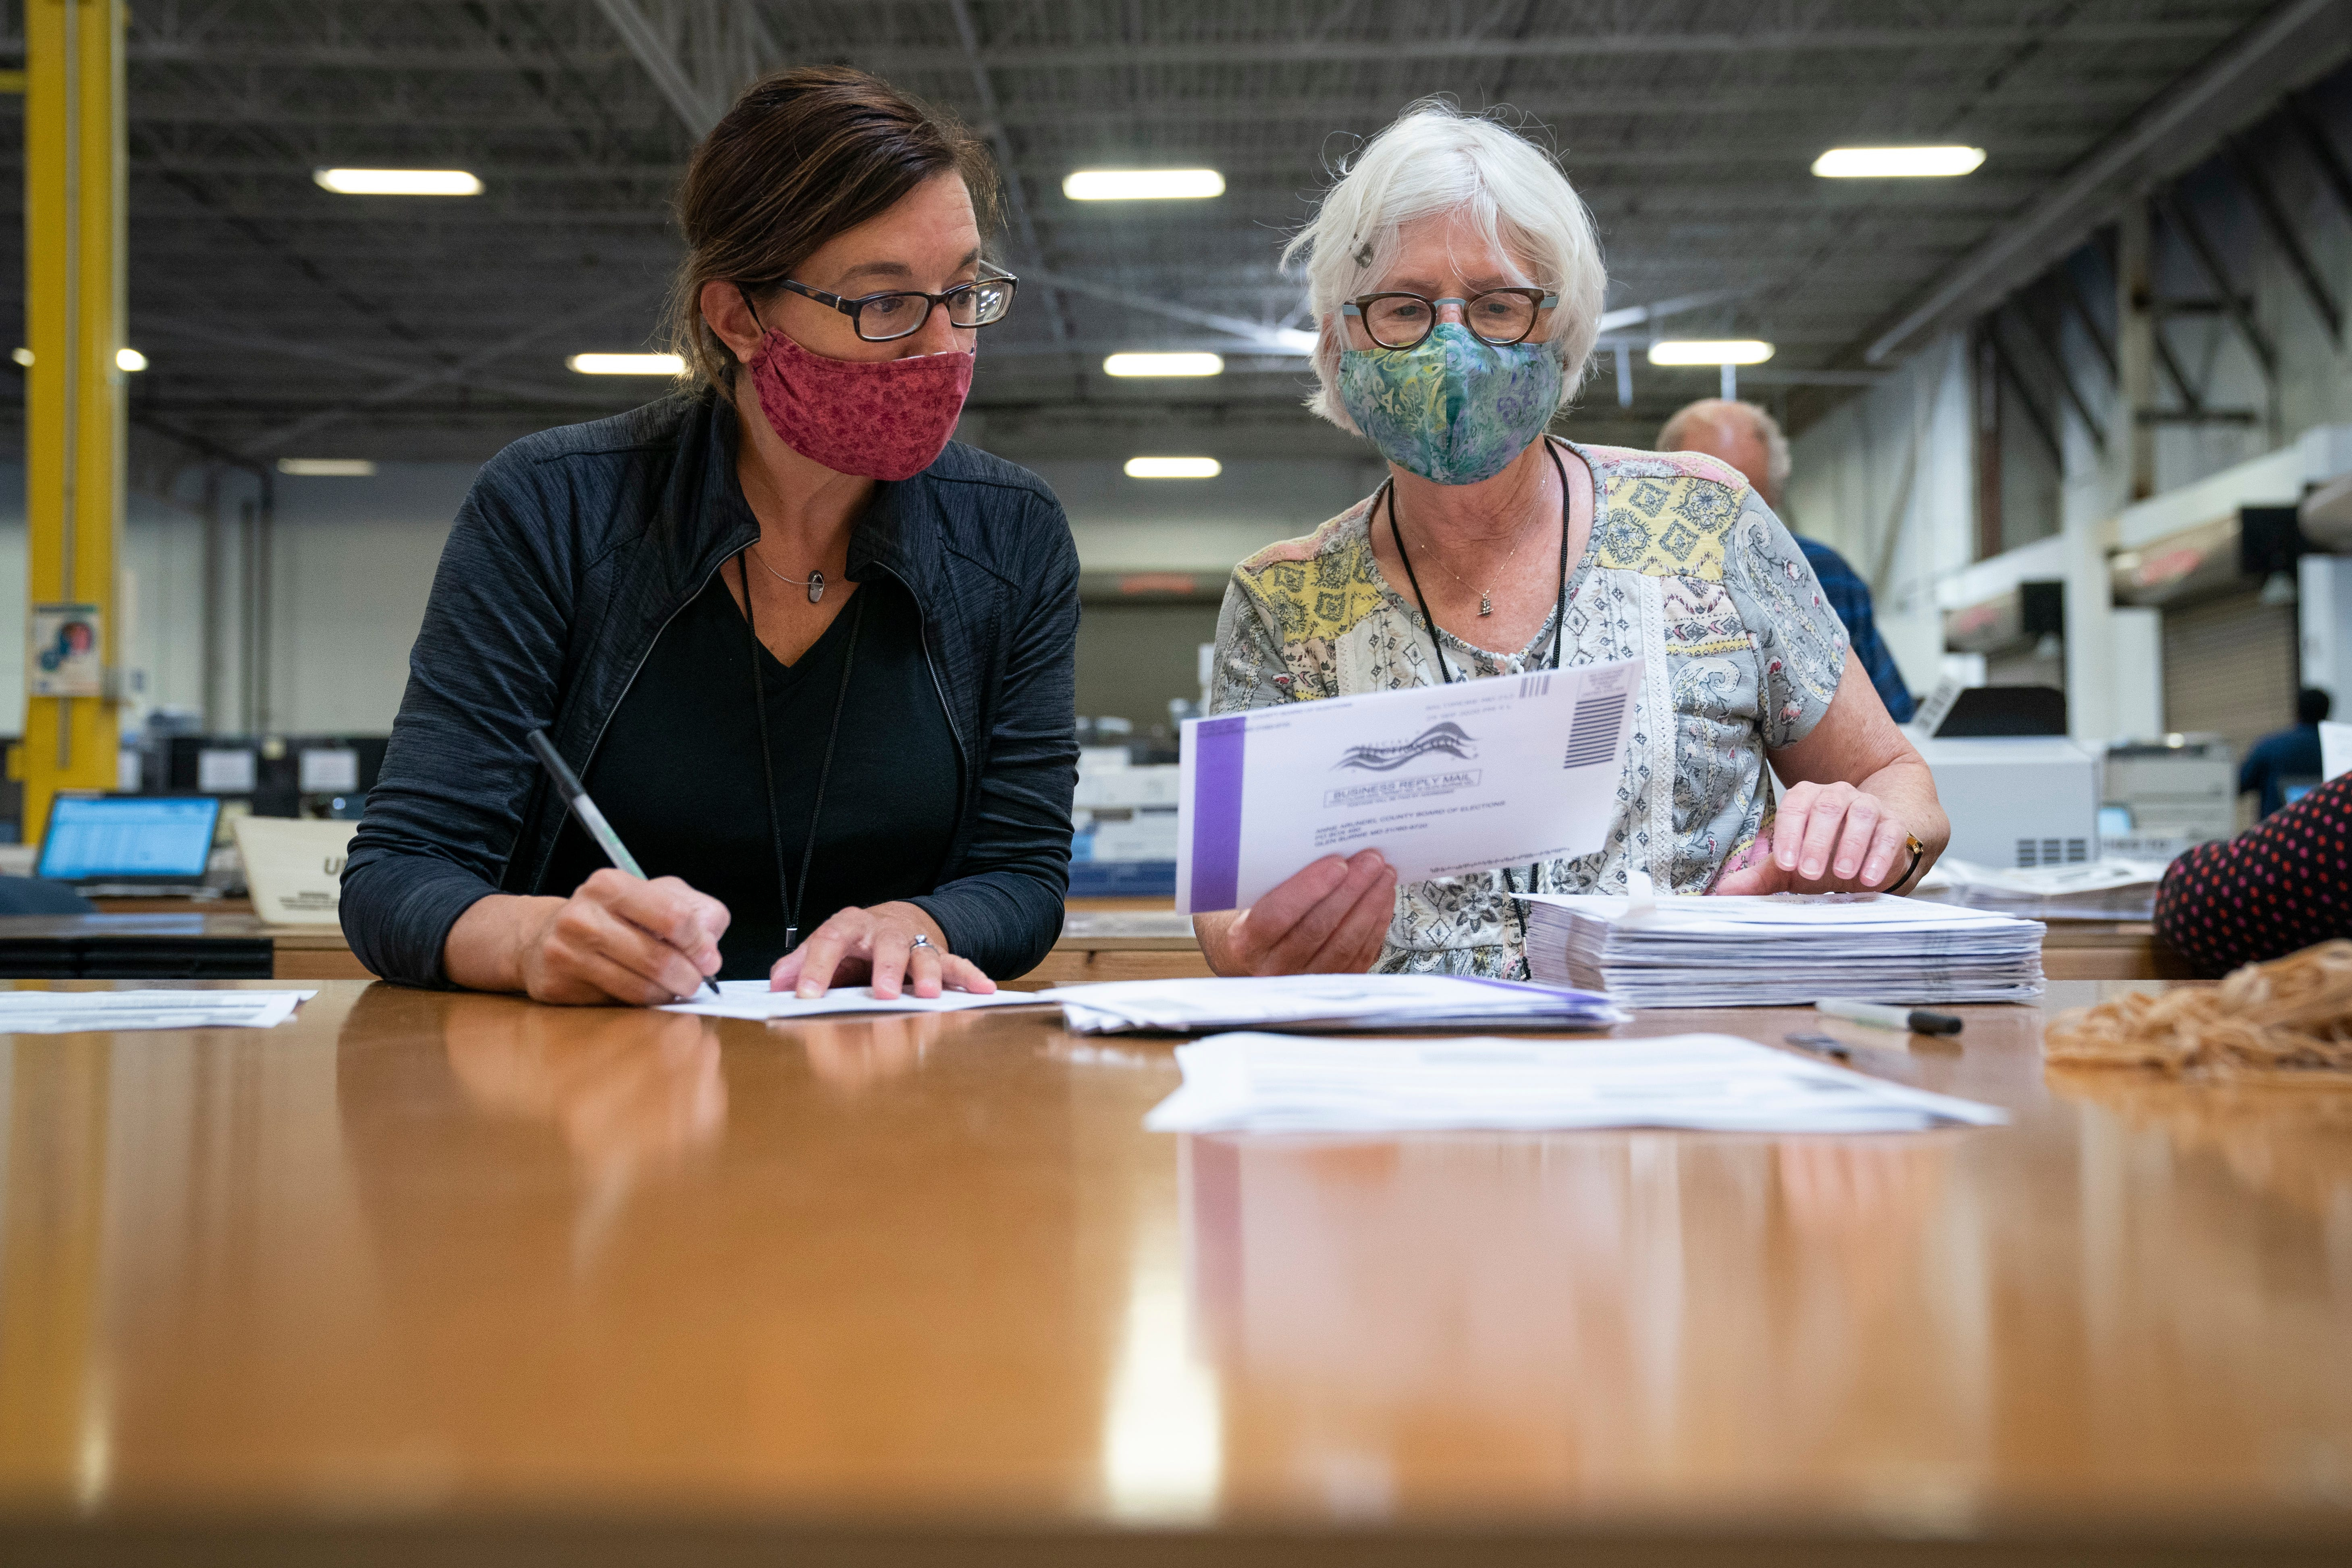 Working in bipartisan pairs, canvassers process mail-in ballots Oct. 7, 2020, in a warehouse at the Anne Arundel County Board of Elections headquarters in Glen Burnie, Md.